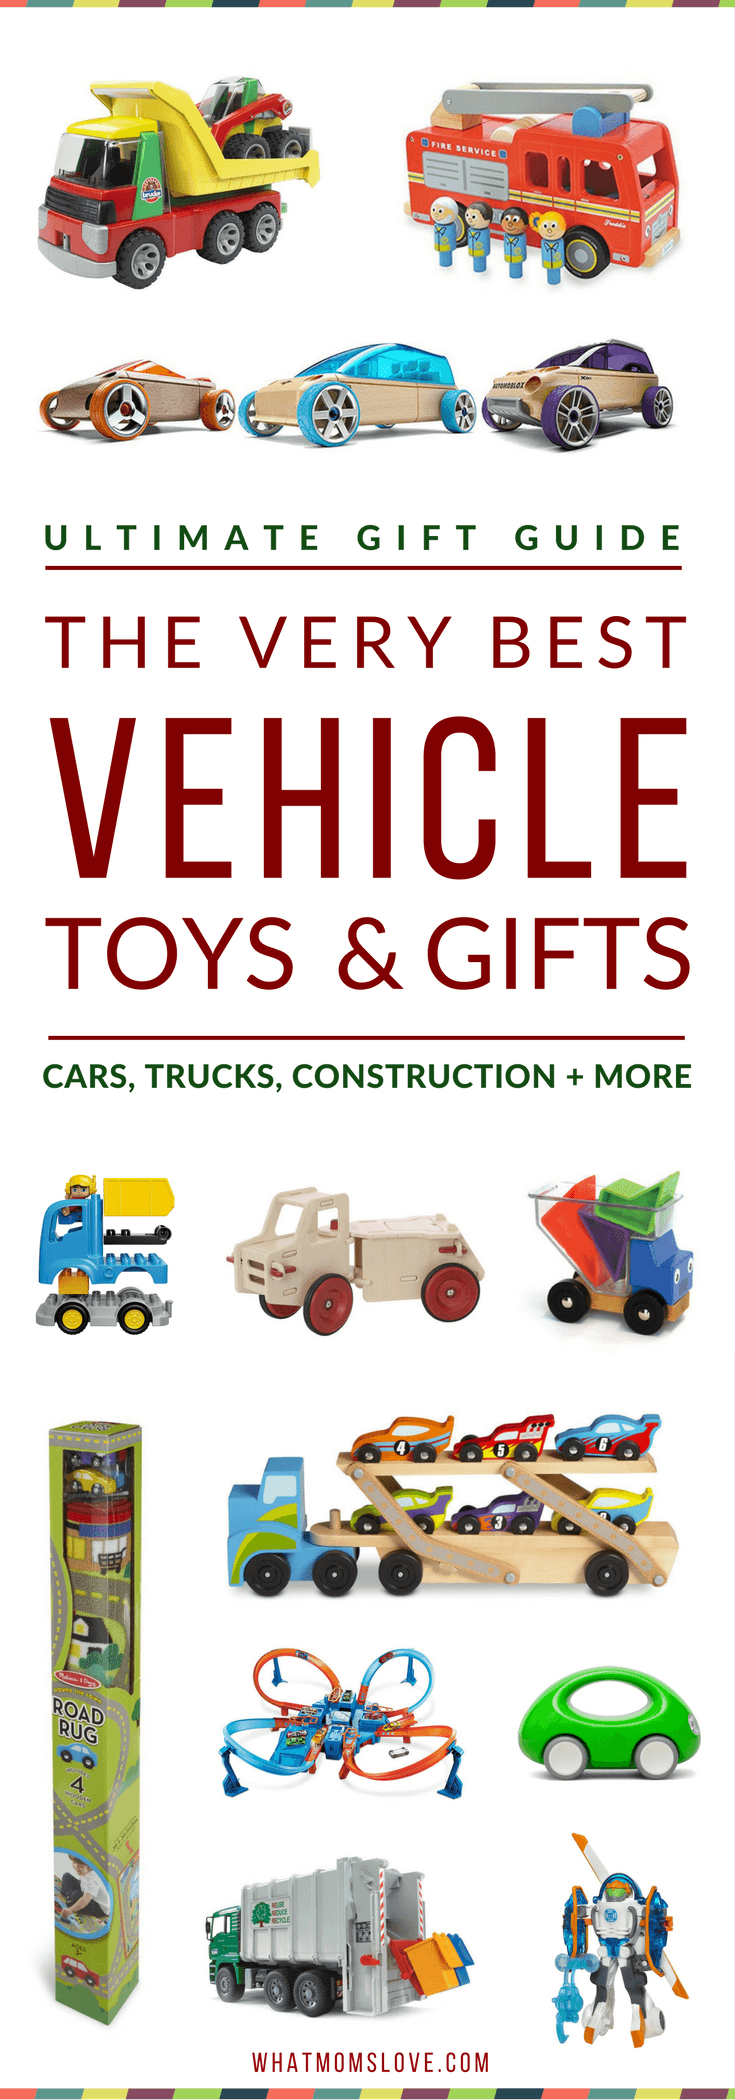 Construction Vehicle Toys For Boys : Gift guide the best vehicle toys for car truck